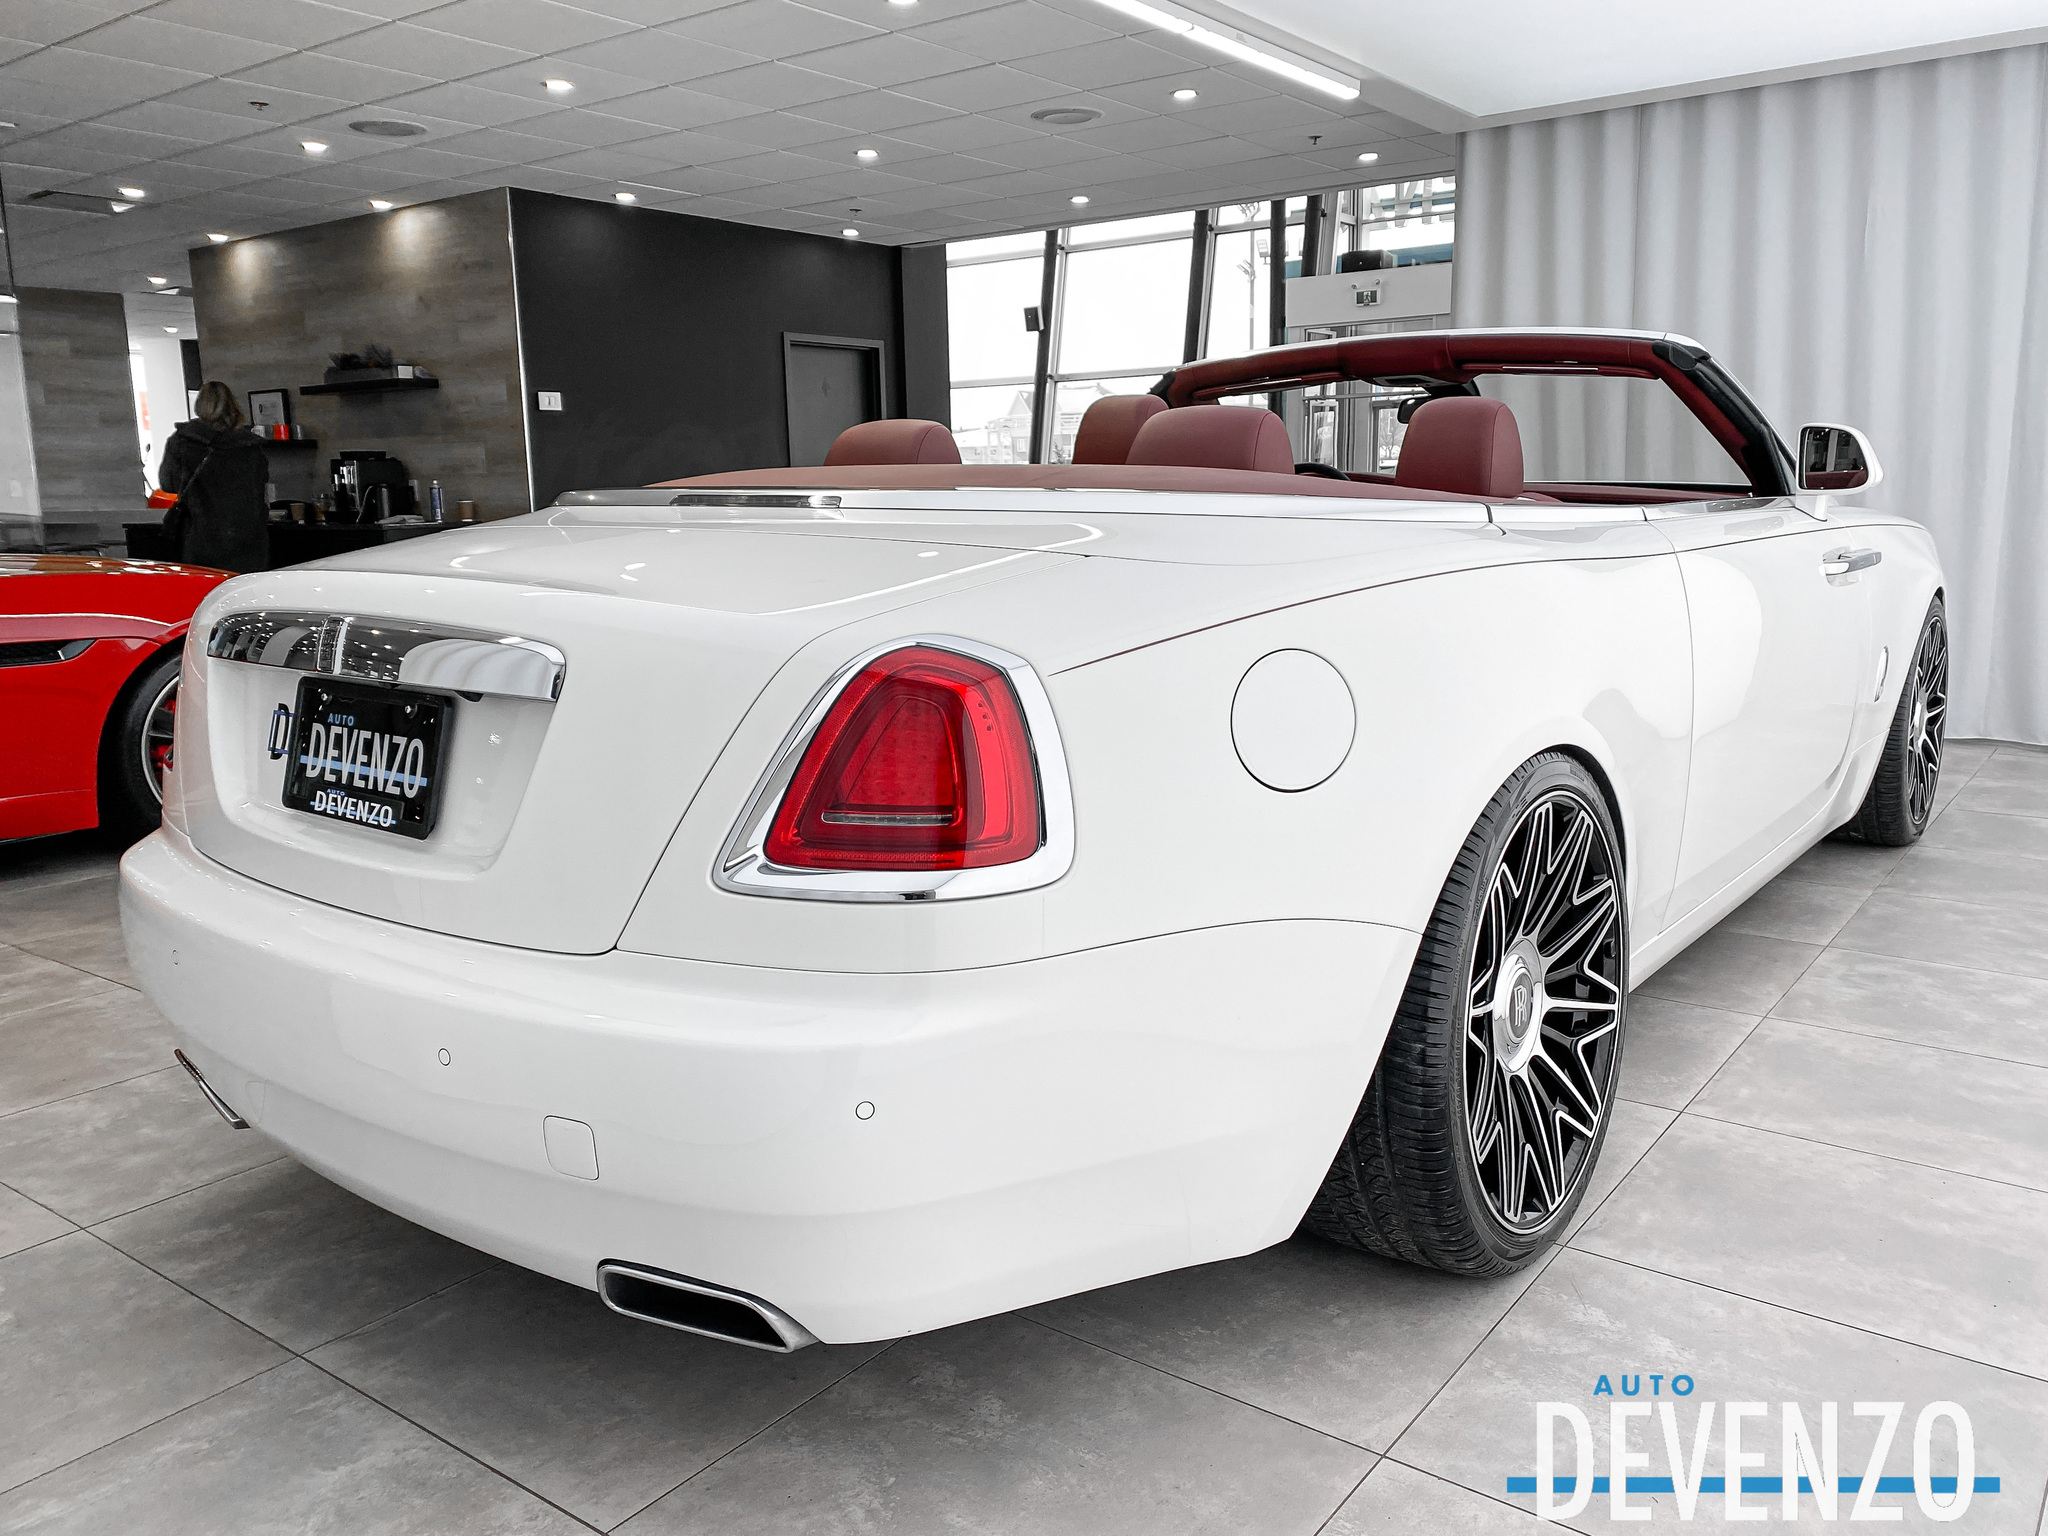 2017 Rolls-Royce Dawn Convertible NightView / Adaptive Cruise / Bespoke complet